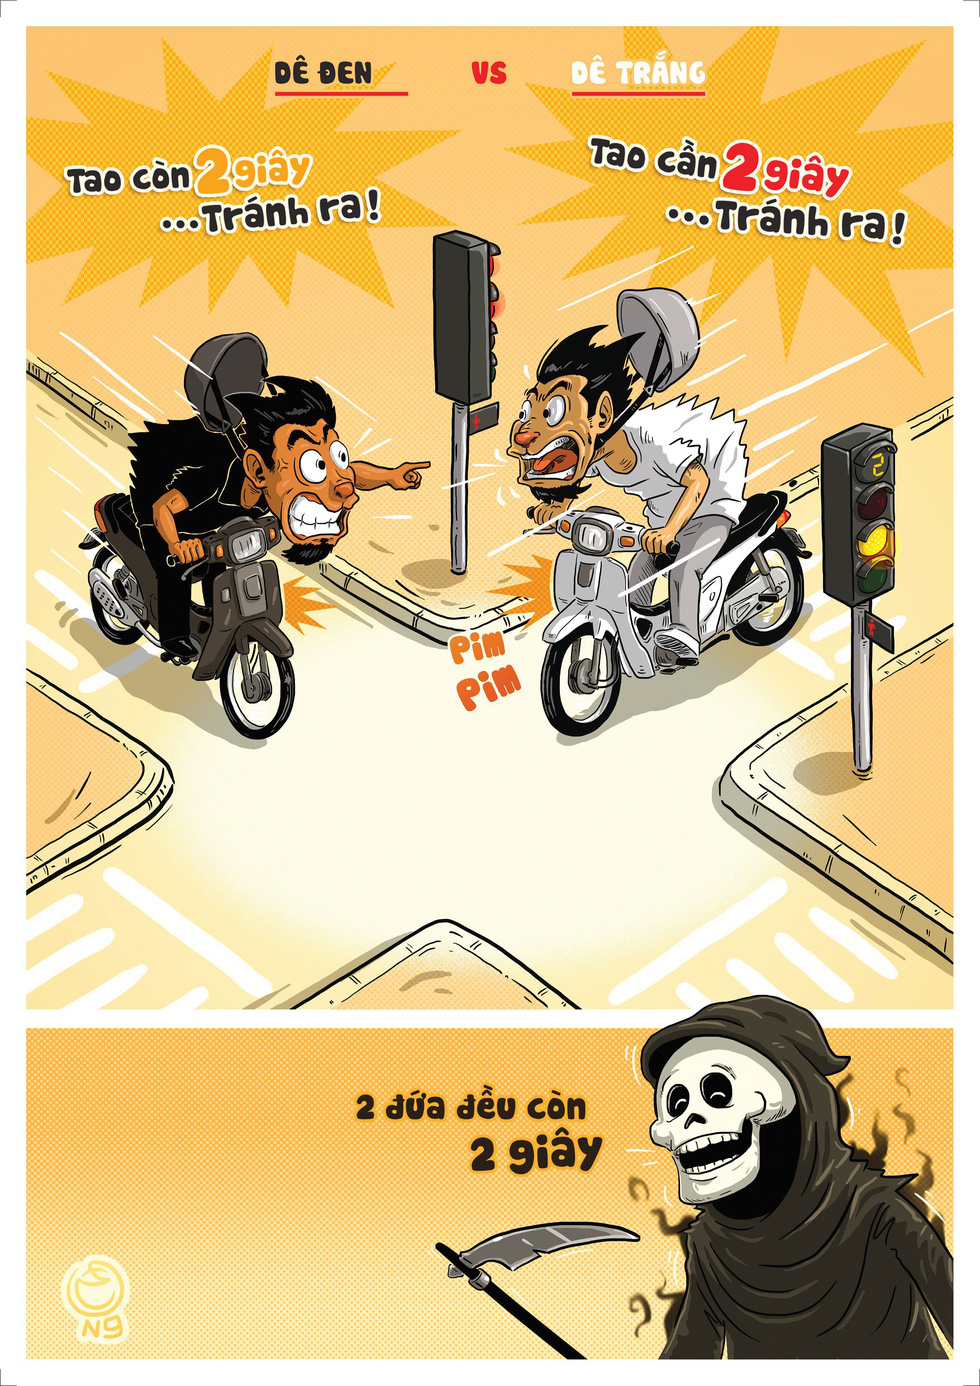 'De den va de trang' (A Story of Two Goats) by Tran Hai Nam. The caricature depicts two motorcyclists, one trying to speed through yellow light while the other trying to run the red light, but the ultimate winner is Grim Reaper who will claim both of their lives.